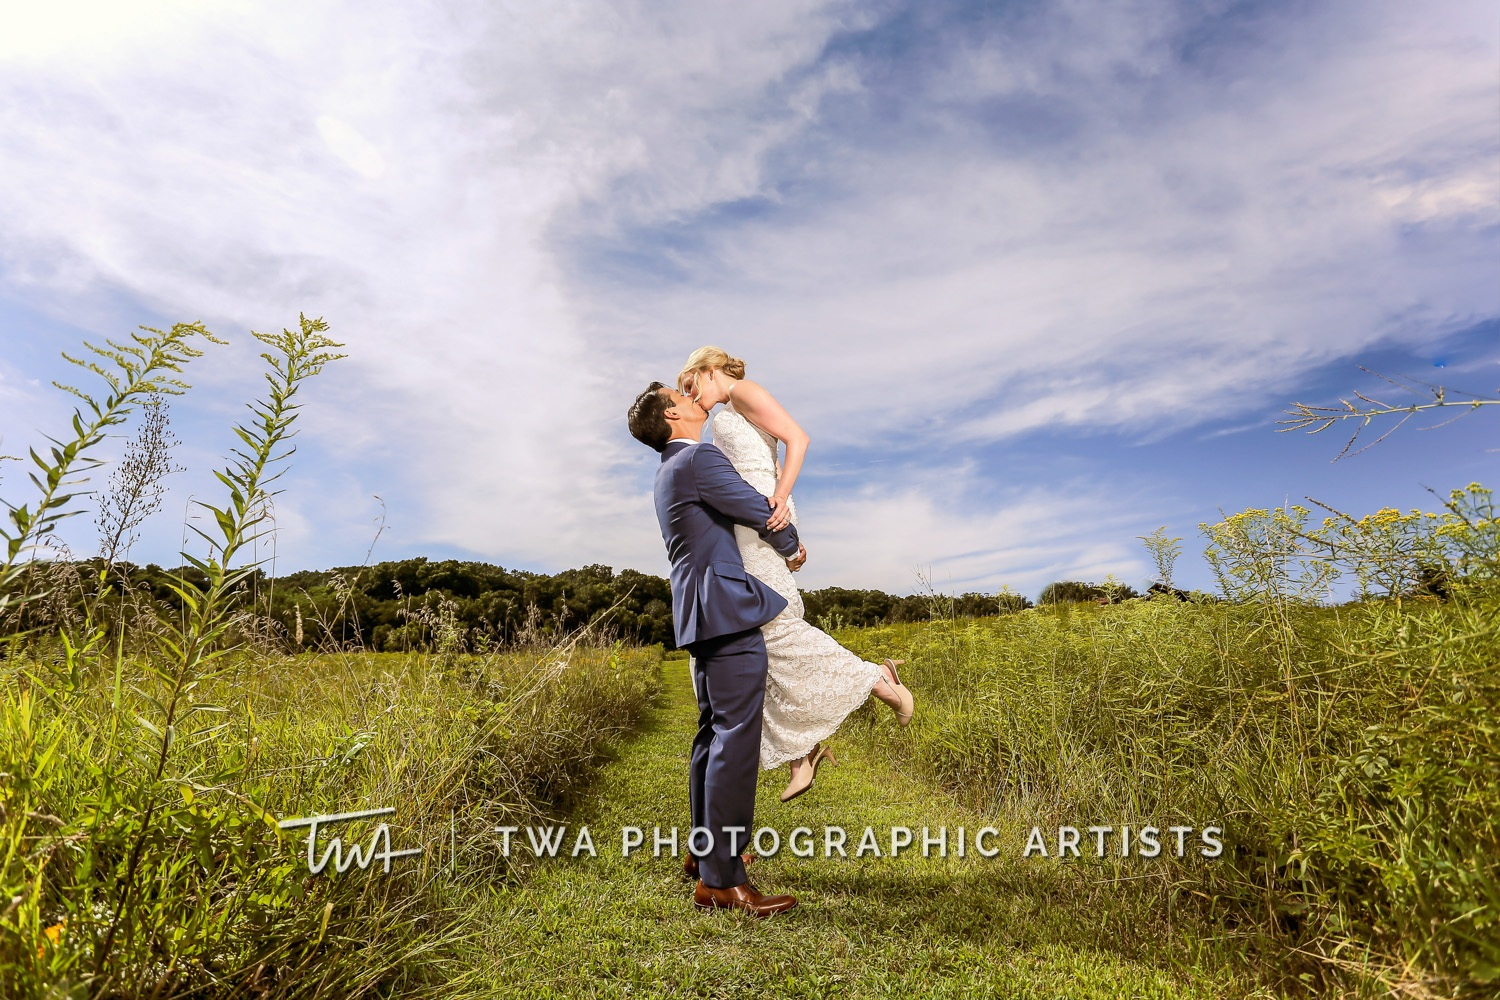 Chicago-Wedding-Photographer-TWA-Photographic-Artists-Cd-and-Me_Liddle_Small_SG_TL-0138